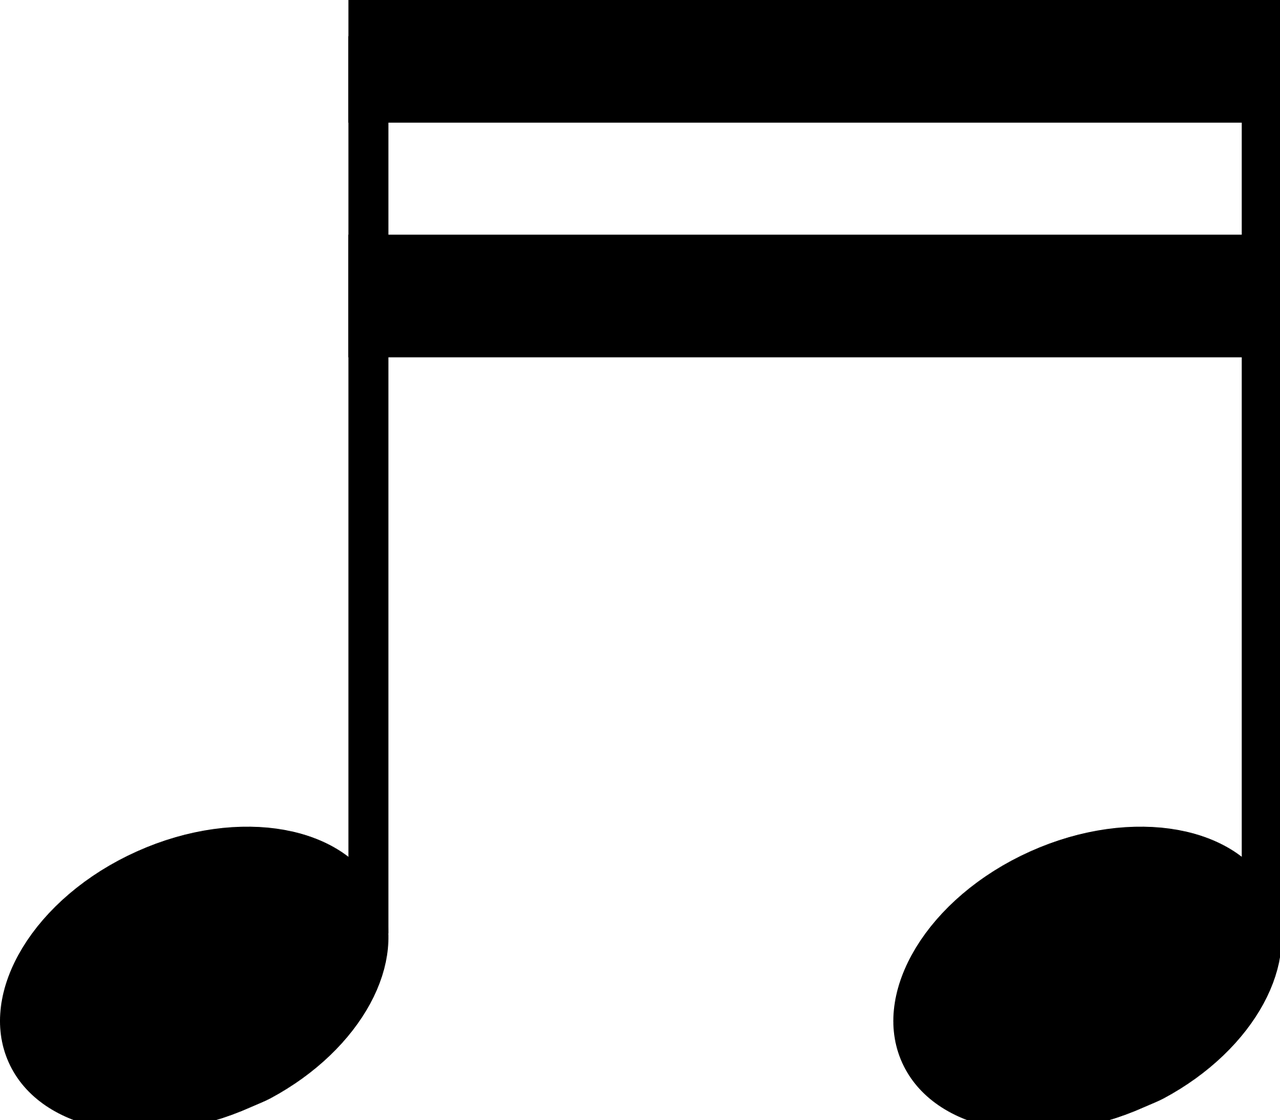 Png images of music notes. Musical collection transparent stickpng